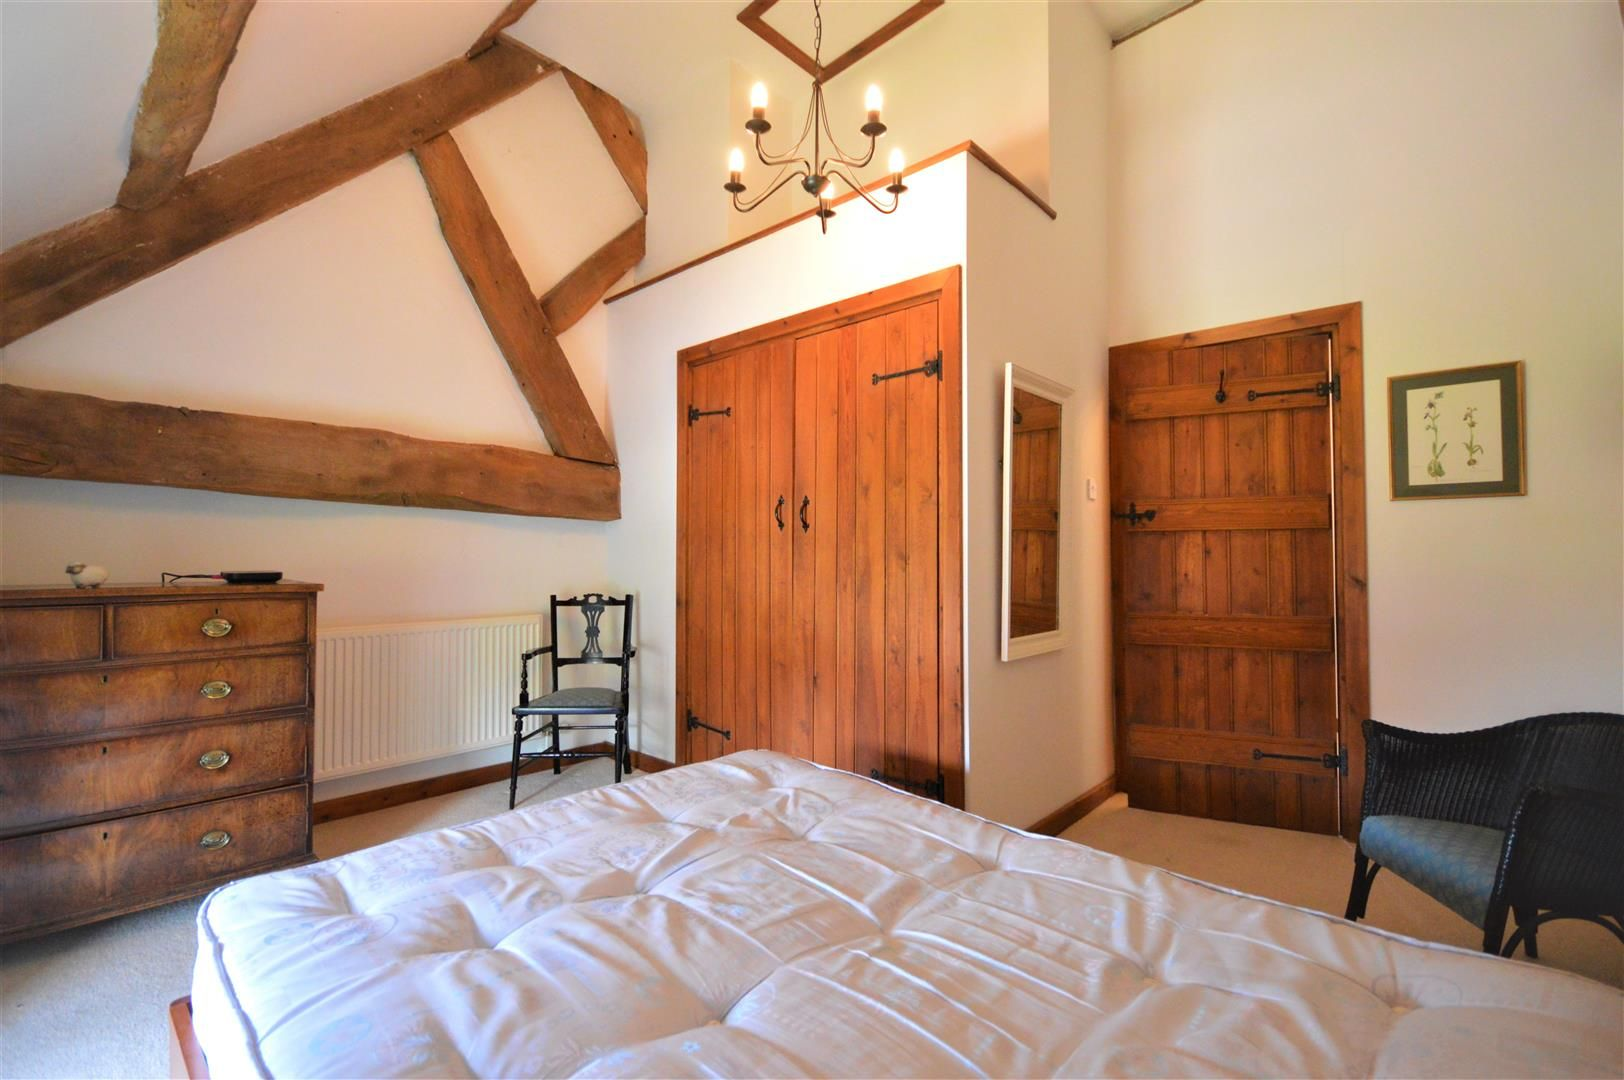 3 bed barn-conversion for sale in Stoke Prior 15